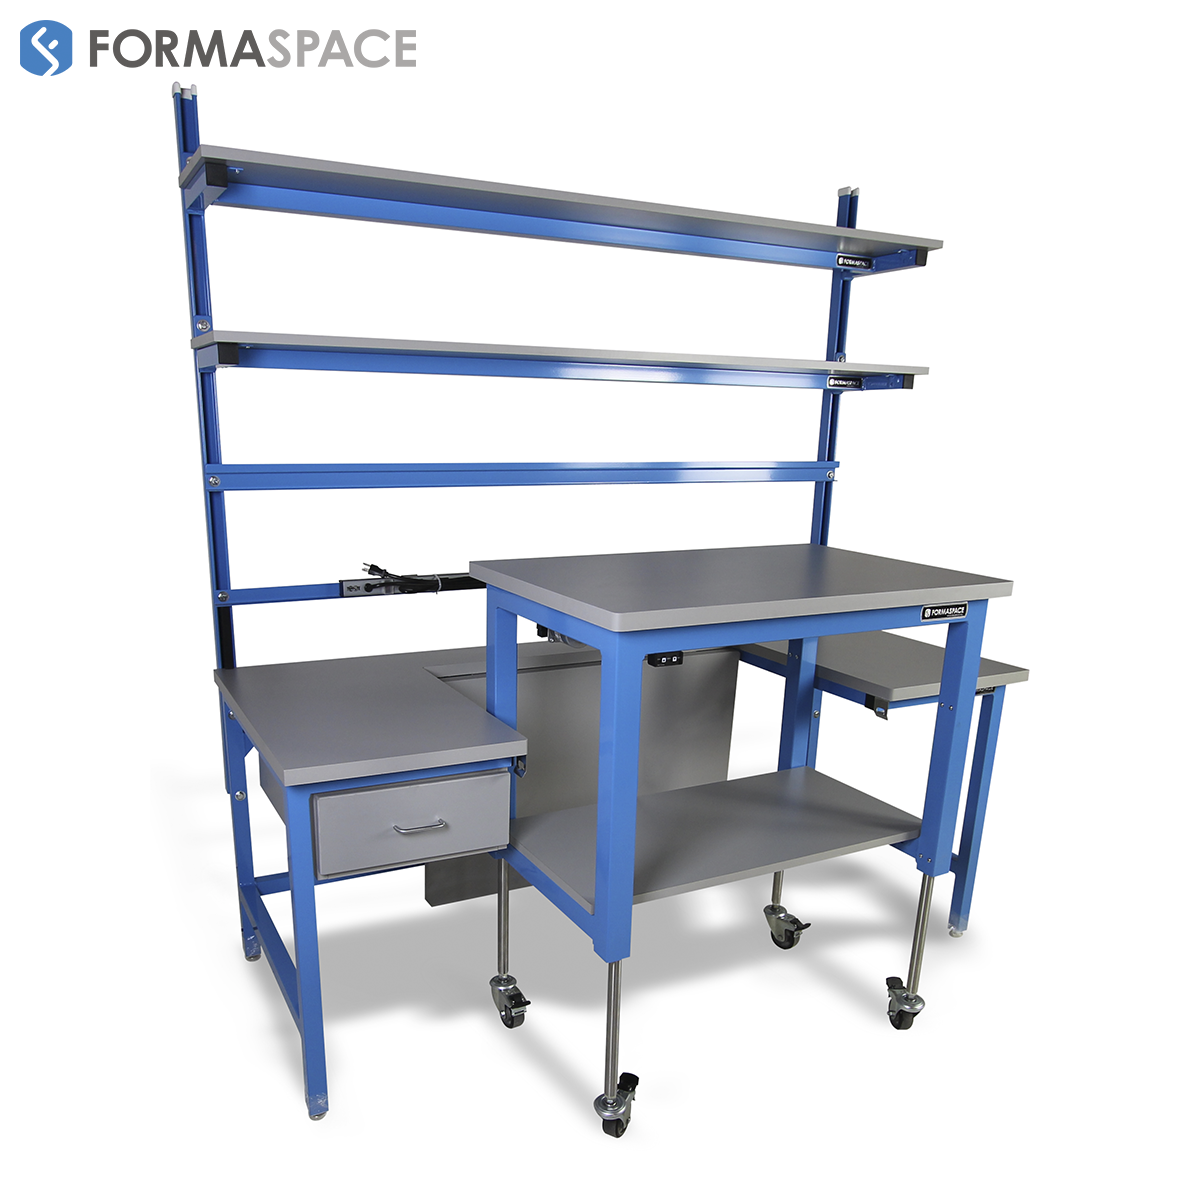 mobile cart attaches and detaches to workbench